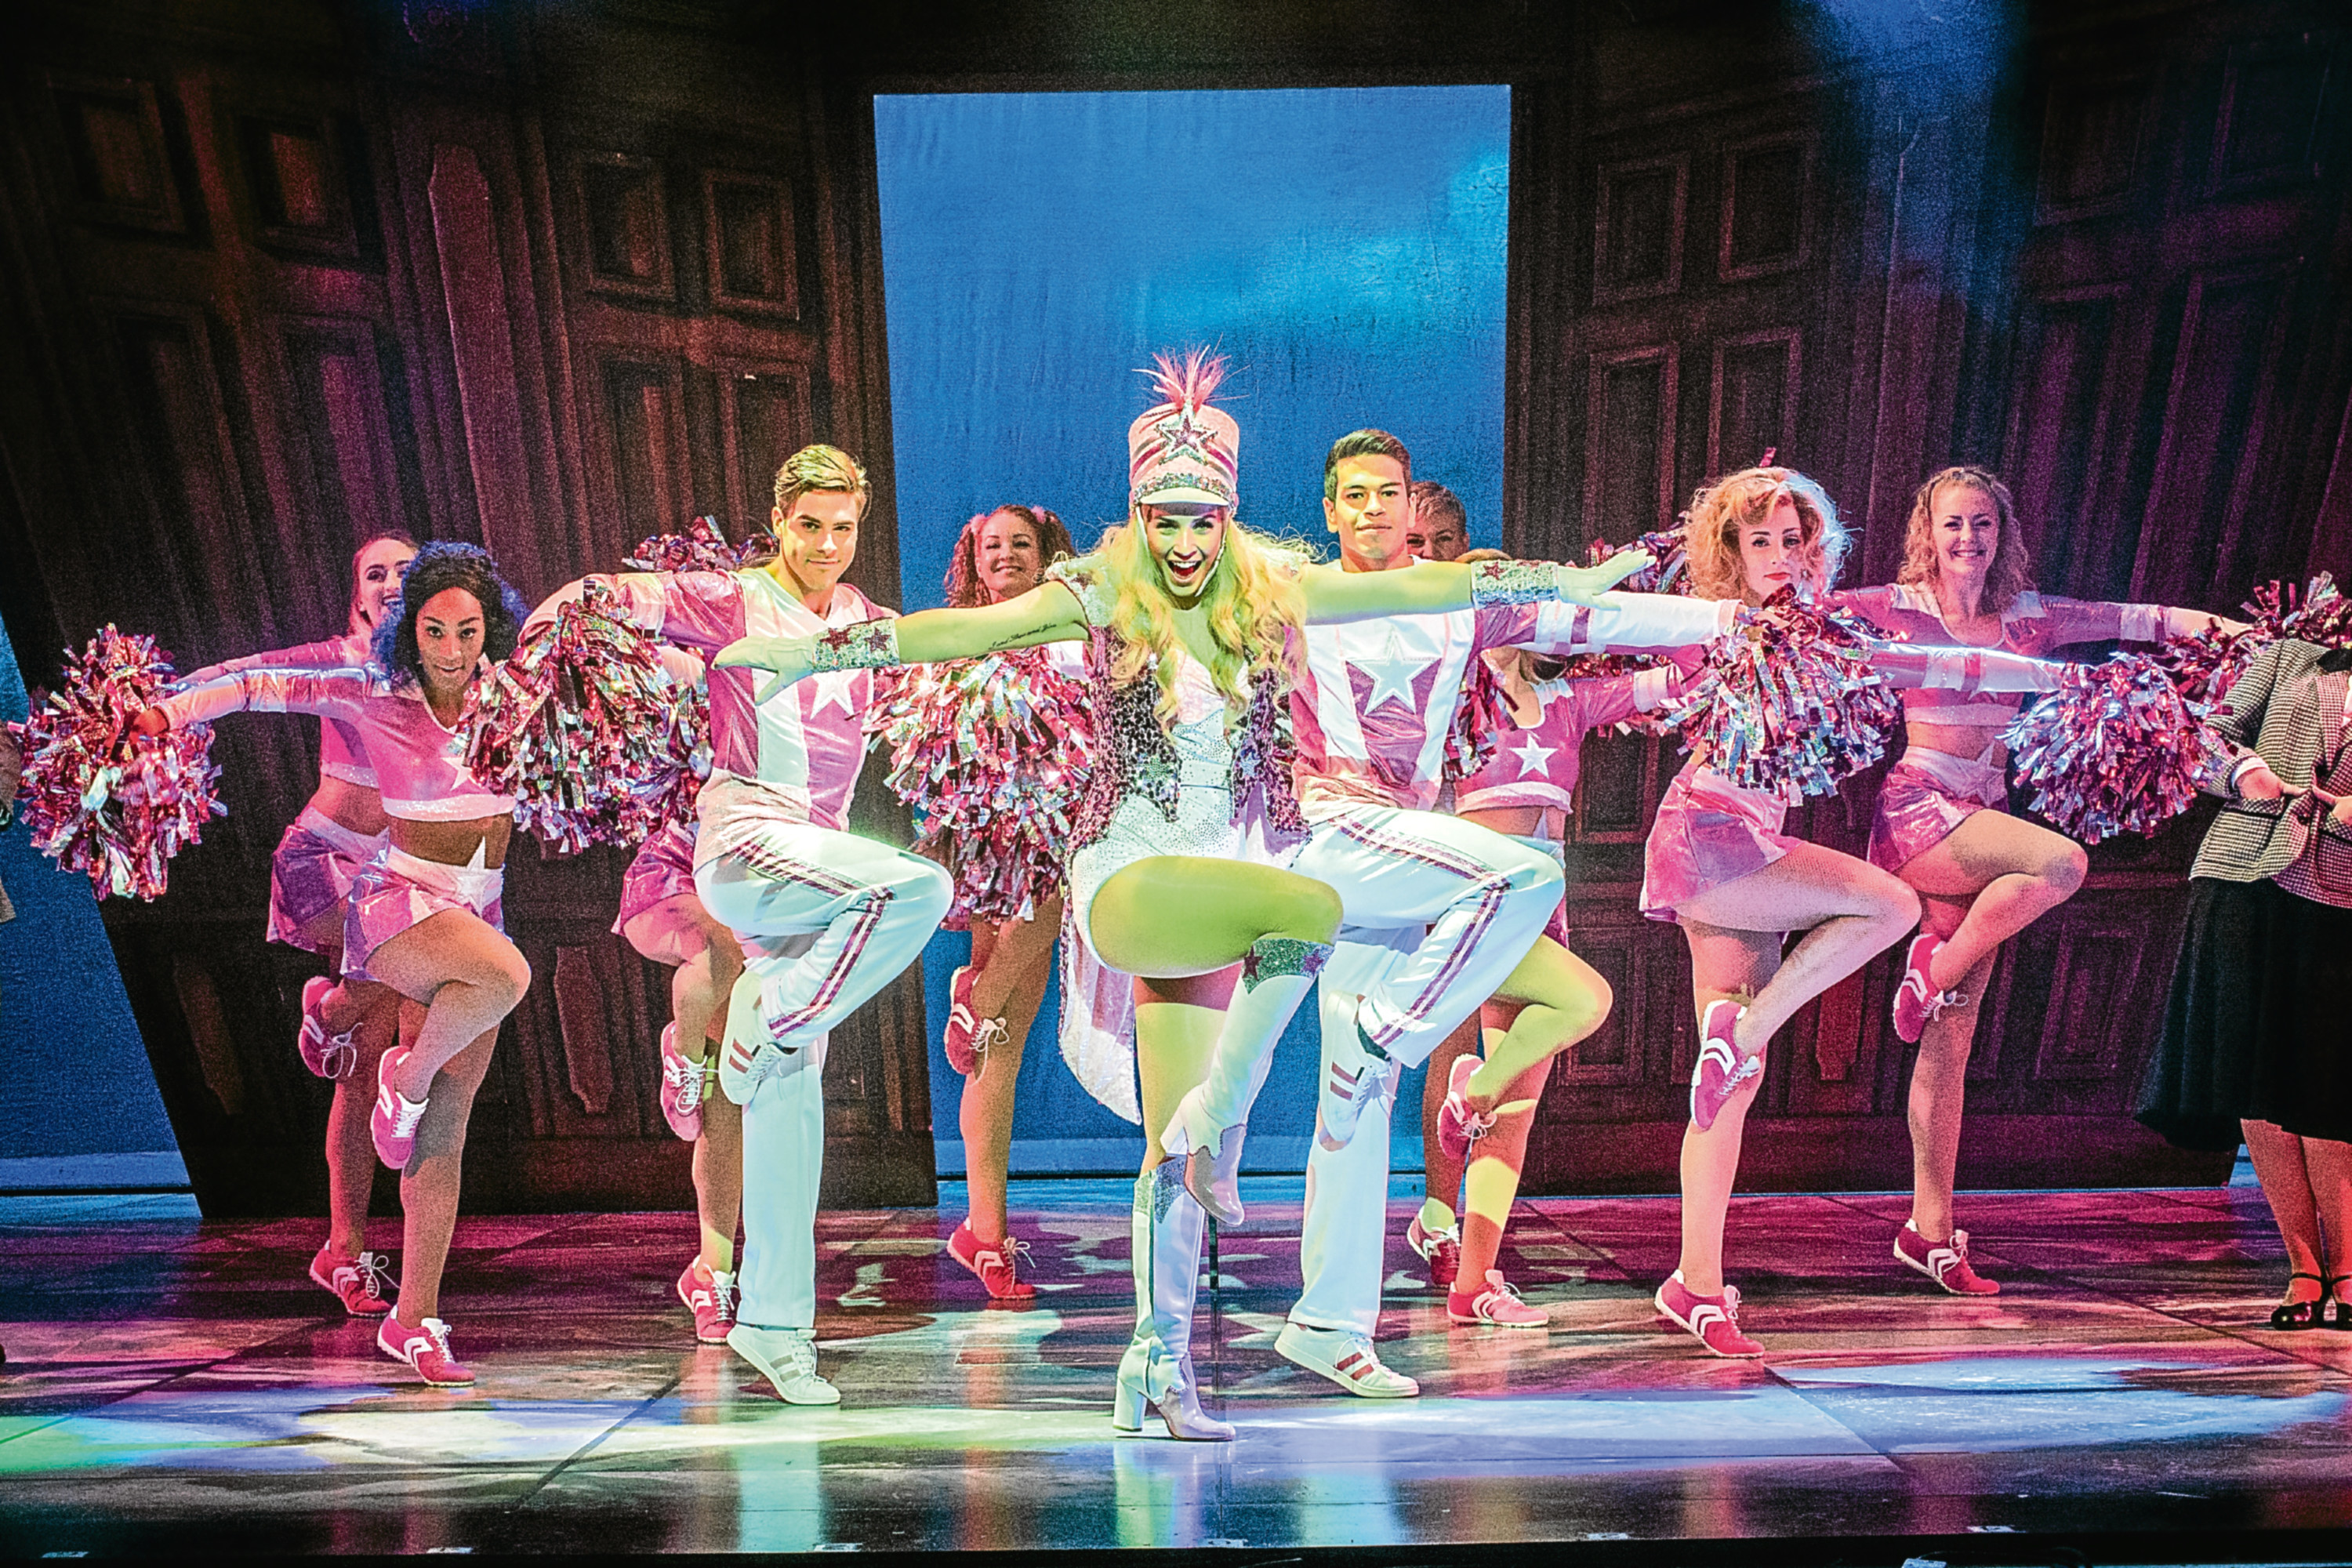 Lucie Jones as Elle Woods, centre, strutting her stuff with the dancers on stage